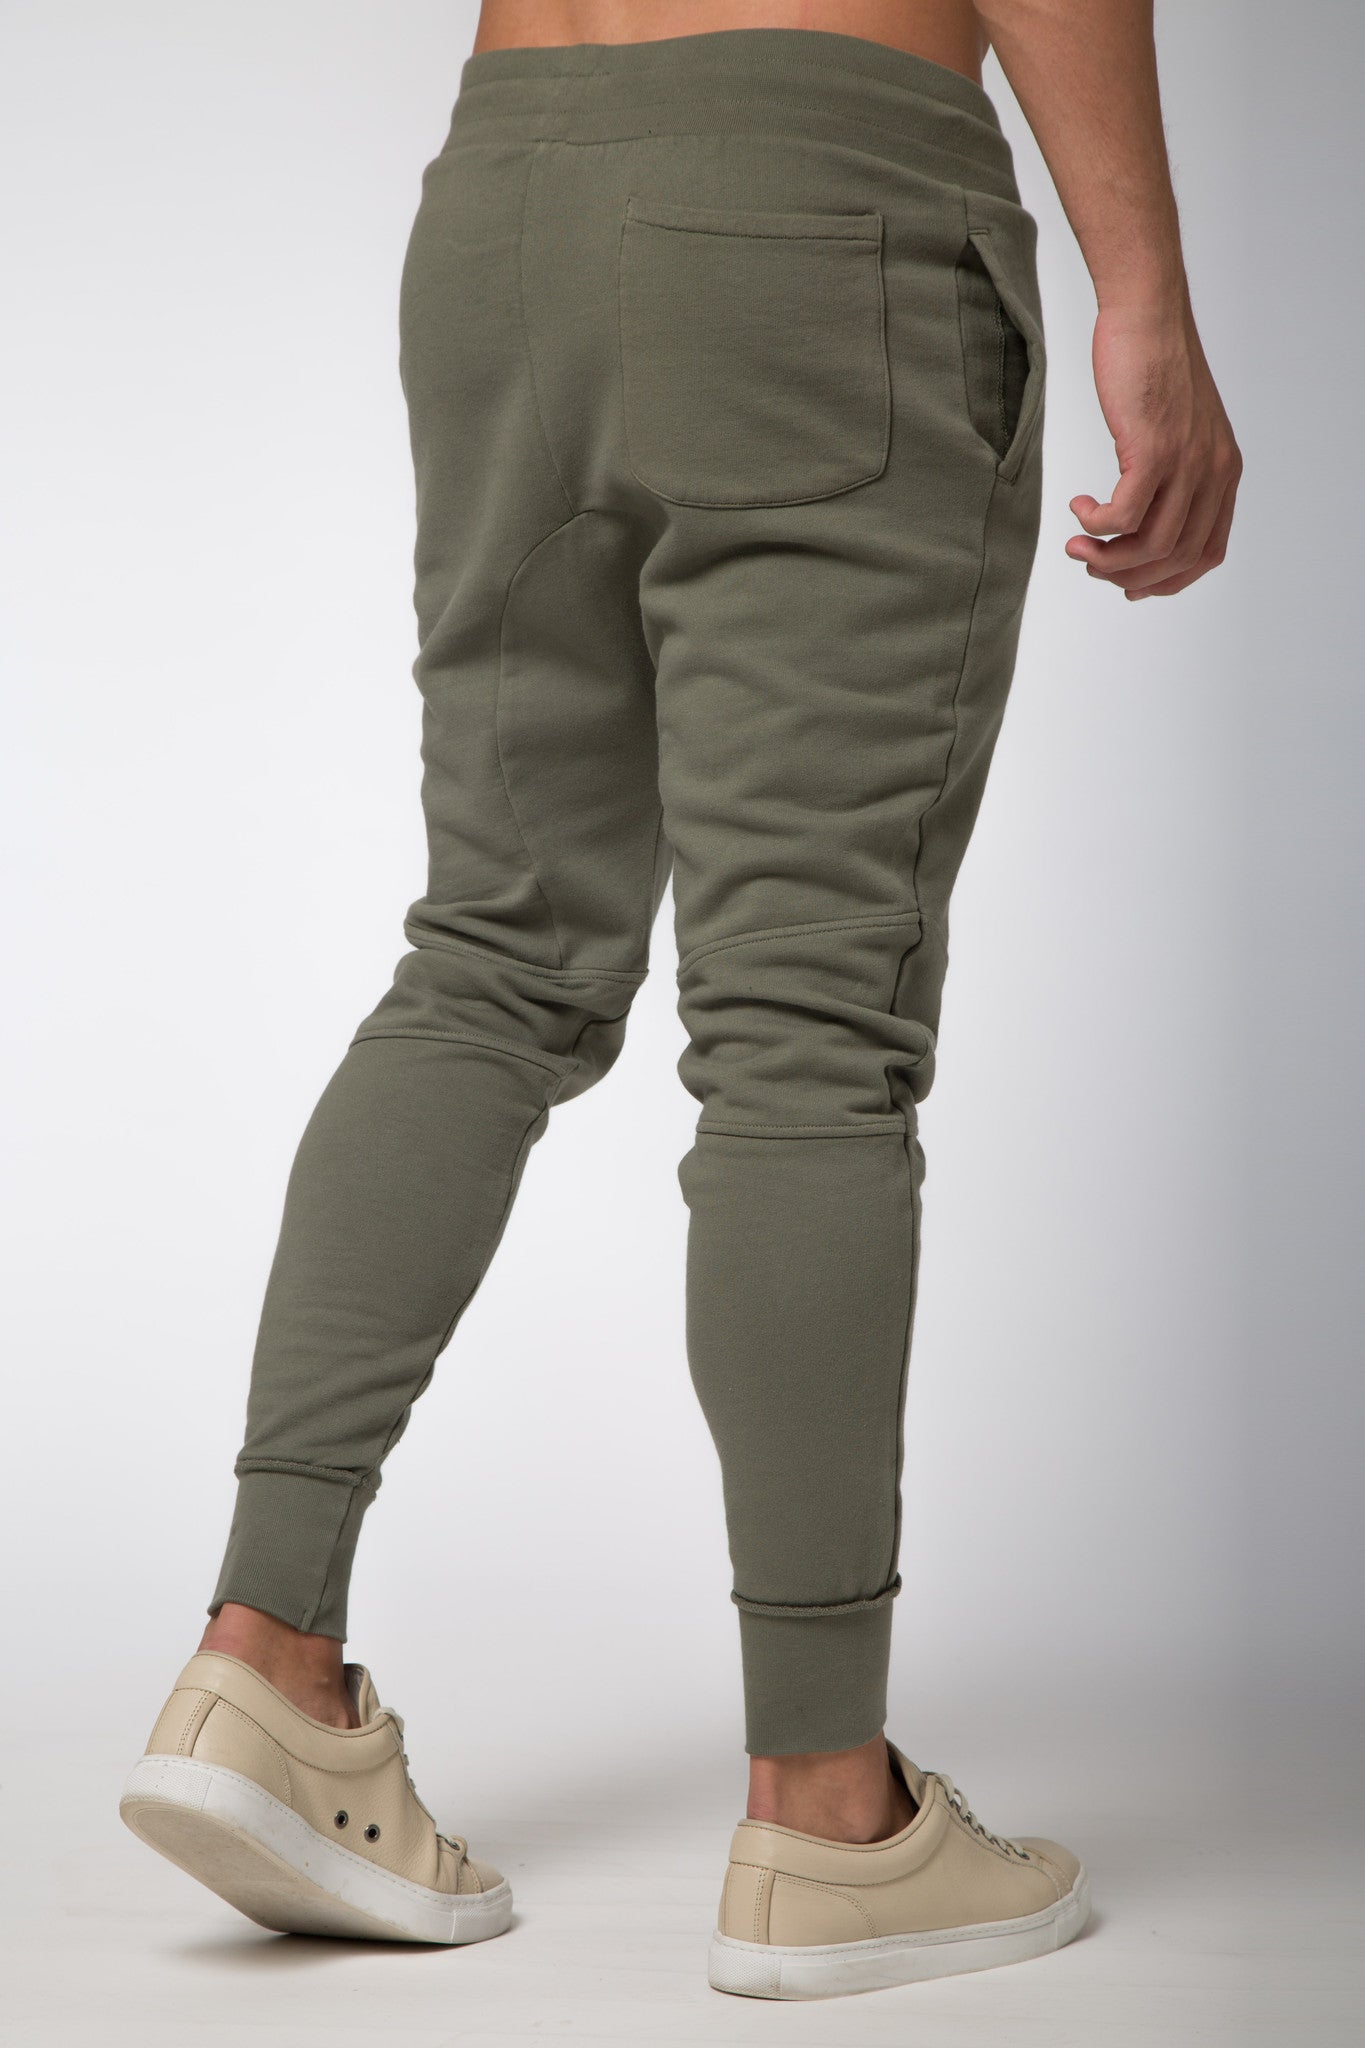 Avid & Co. [ Taylor ] Sweatpant Olive